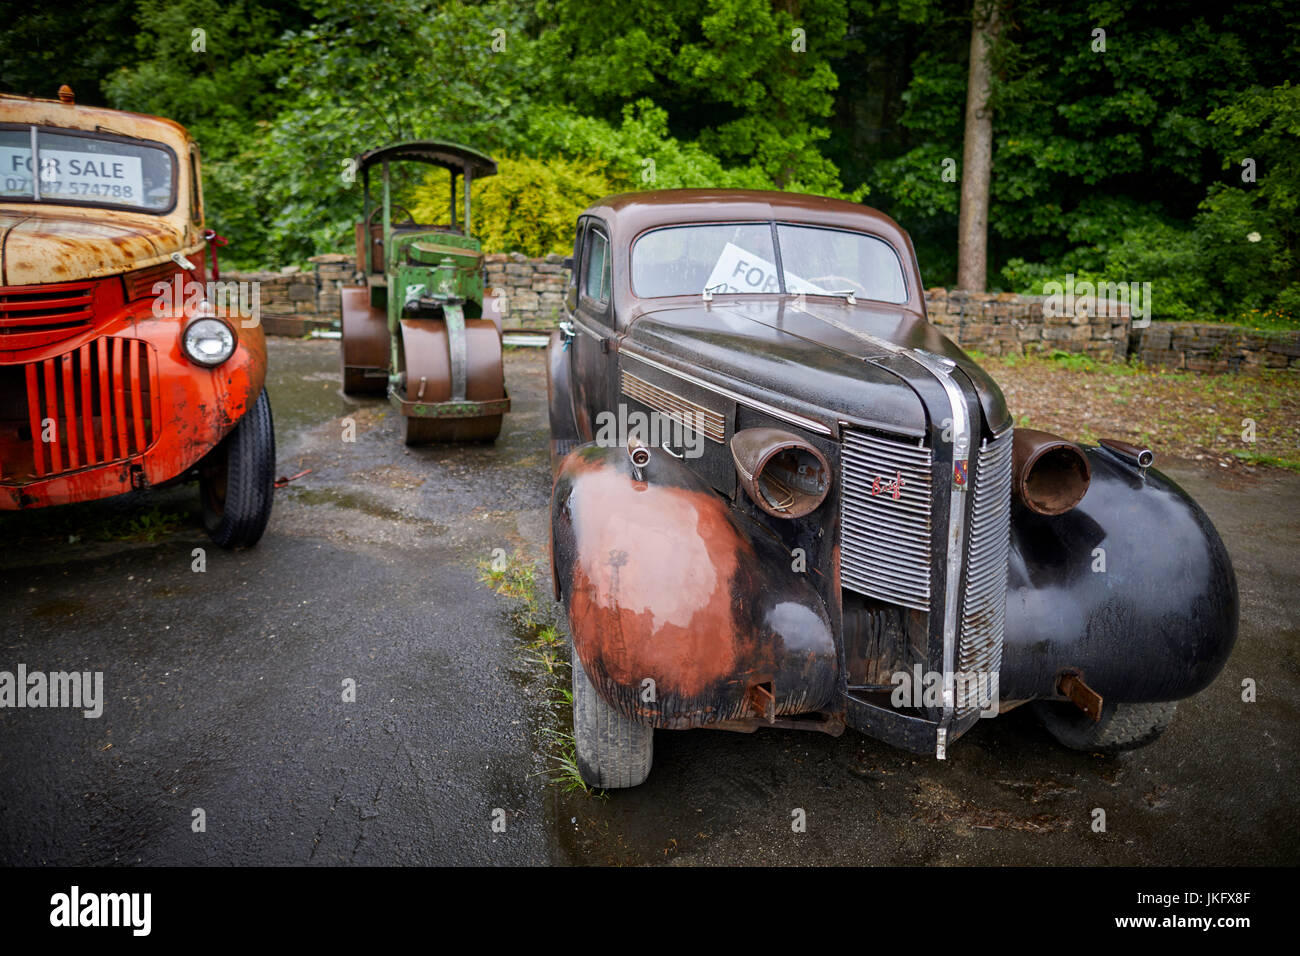 Old american classic cars in need of restoration for sale near ...